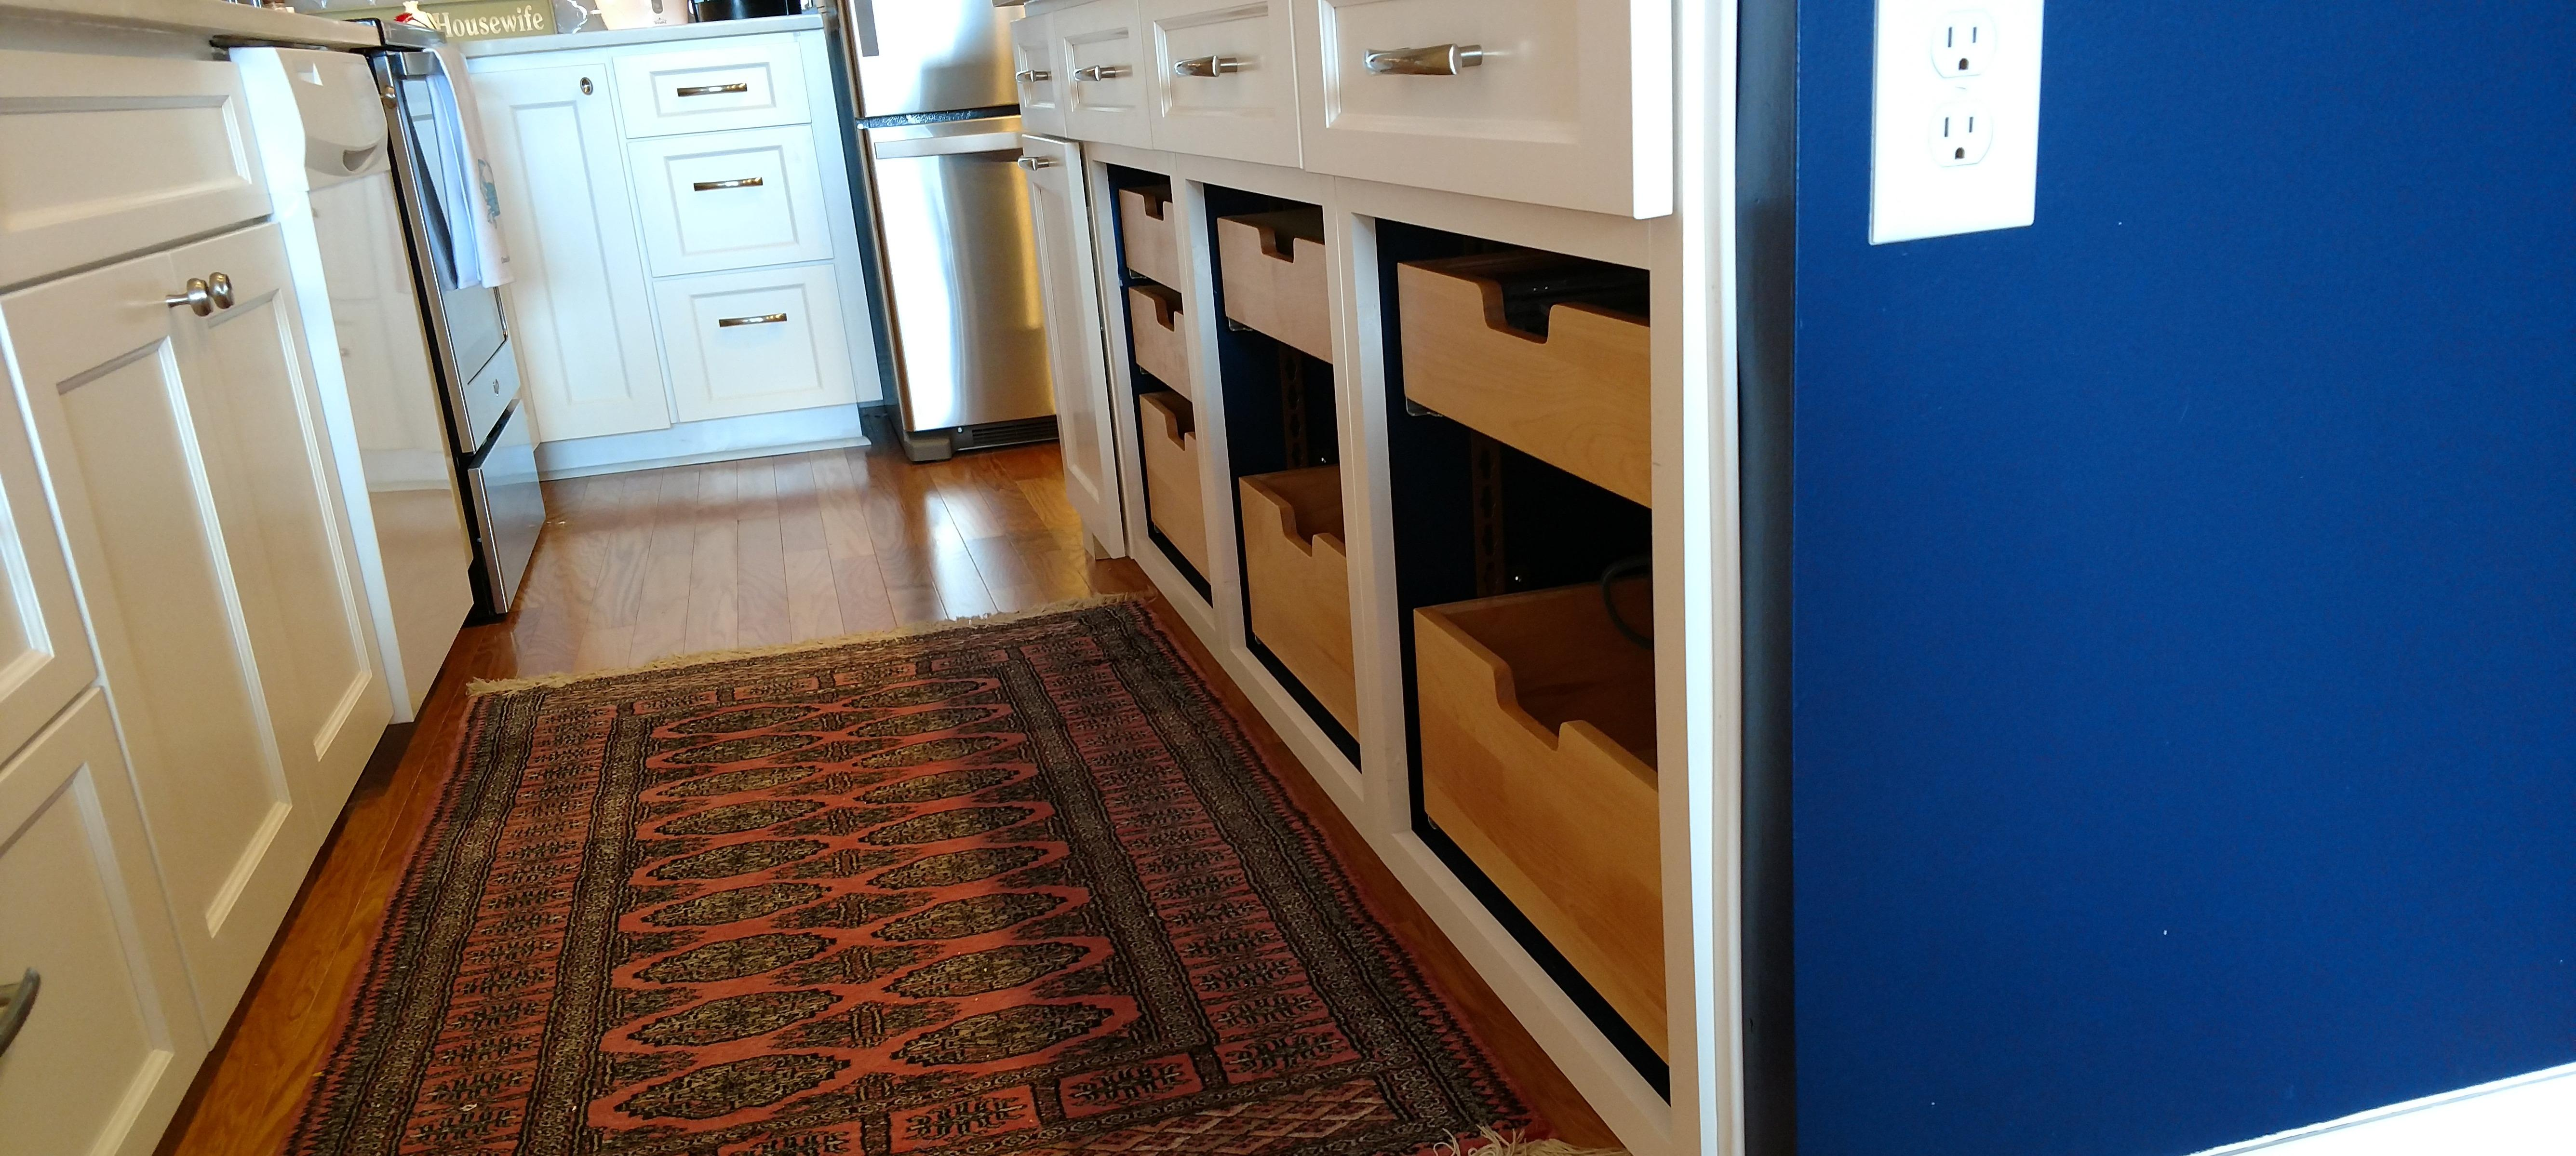 Accurate Upgrades Home Improvements LLC image 12